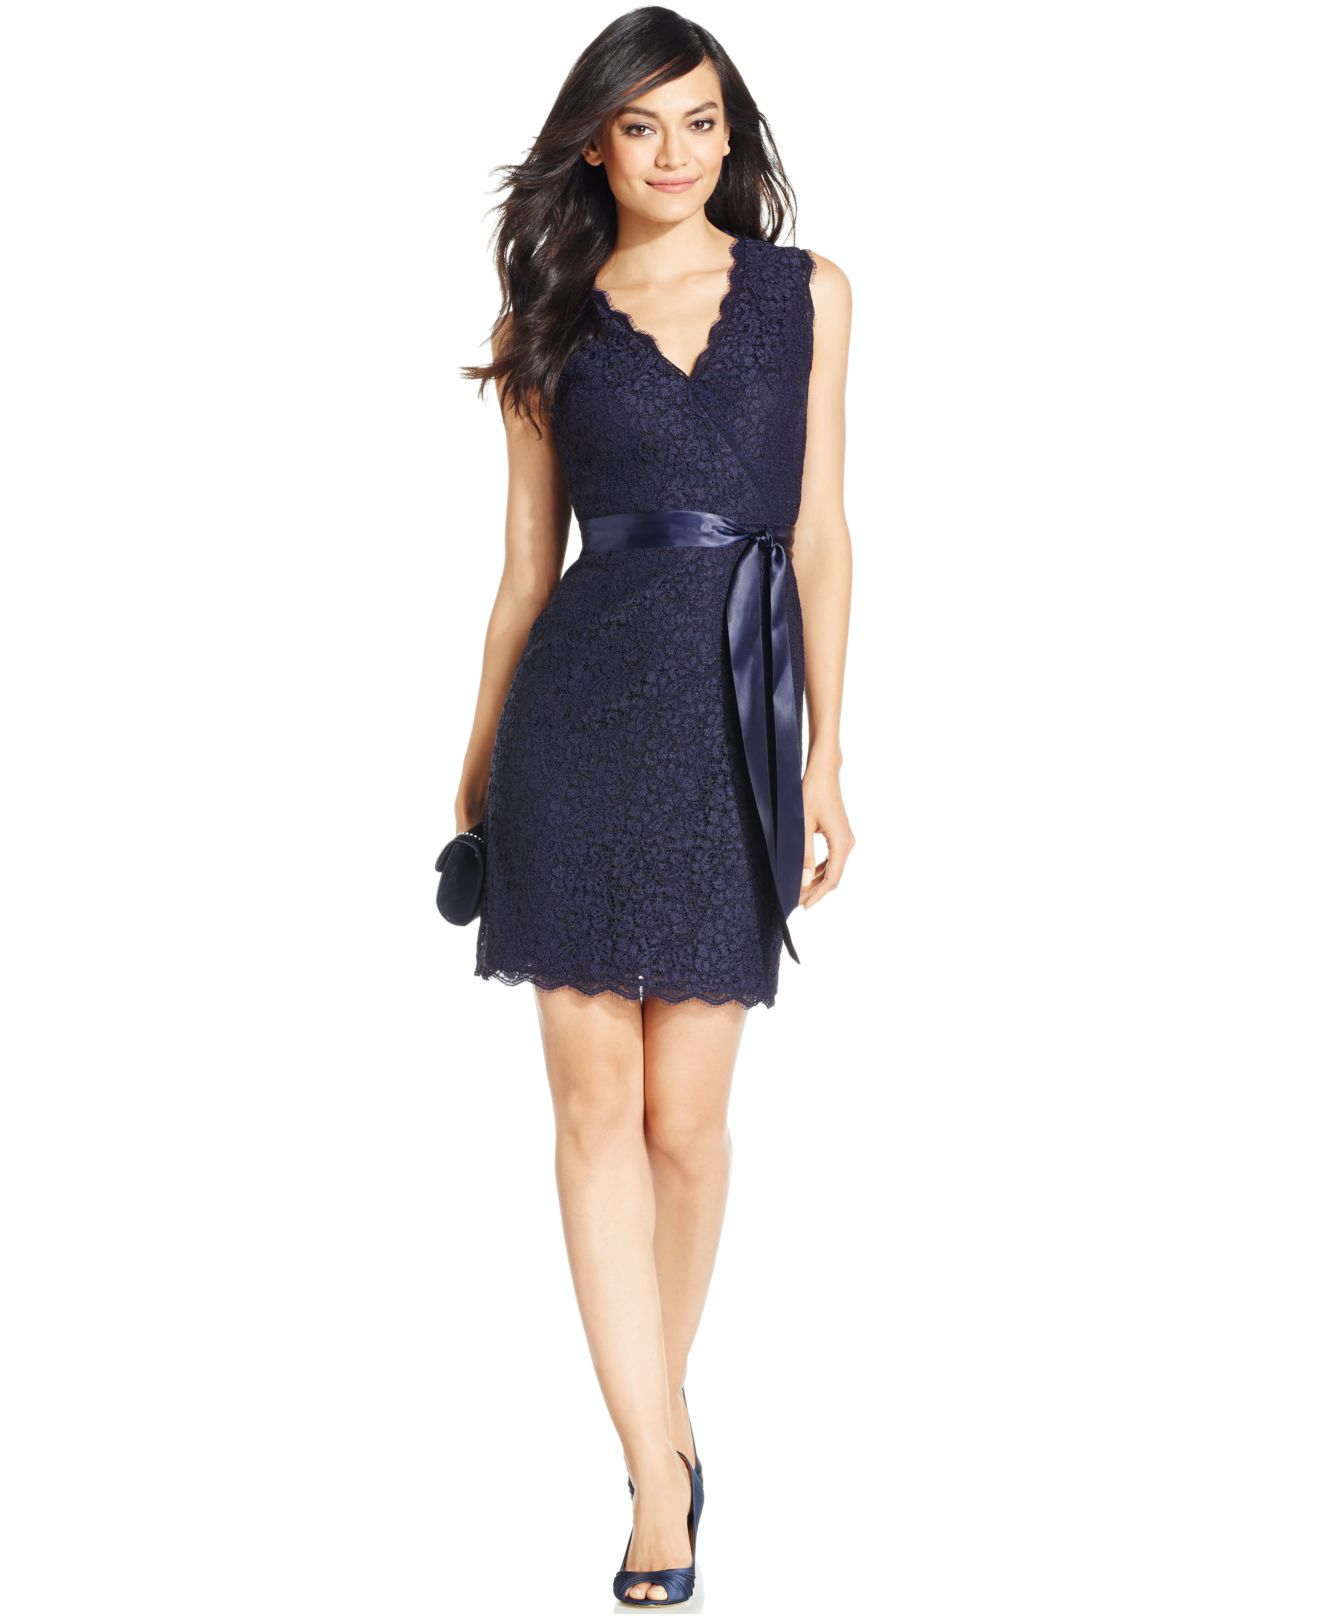 Navy blue lace dress sleeveless